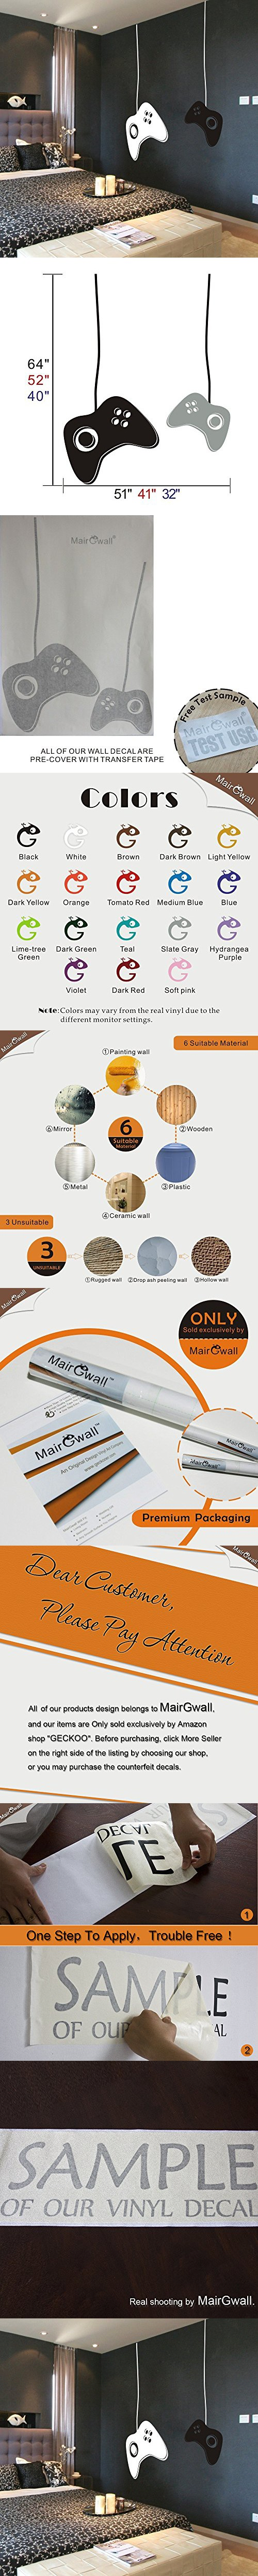 mairgwall game controllers wall decal gamer wall decal vinyl mairgwall game controllers wall decal gamer wall decal vinyl wall mural sticker game on decal